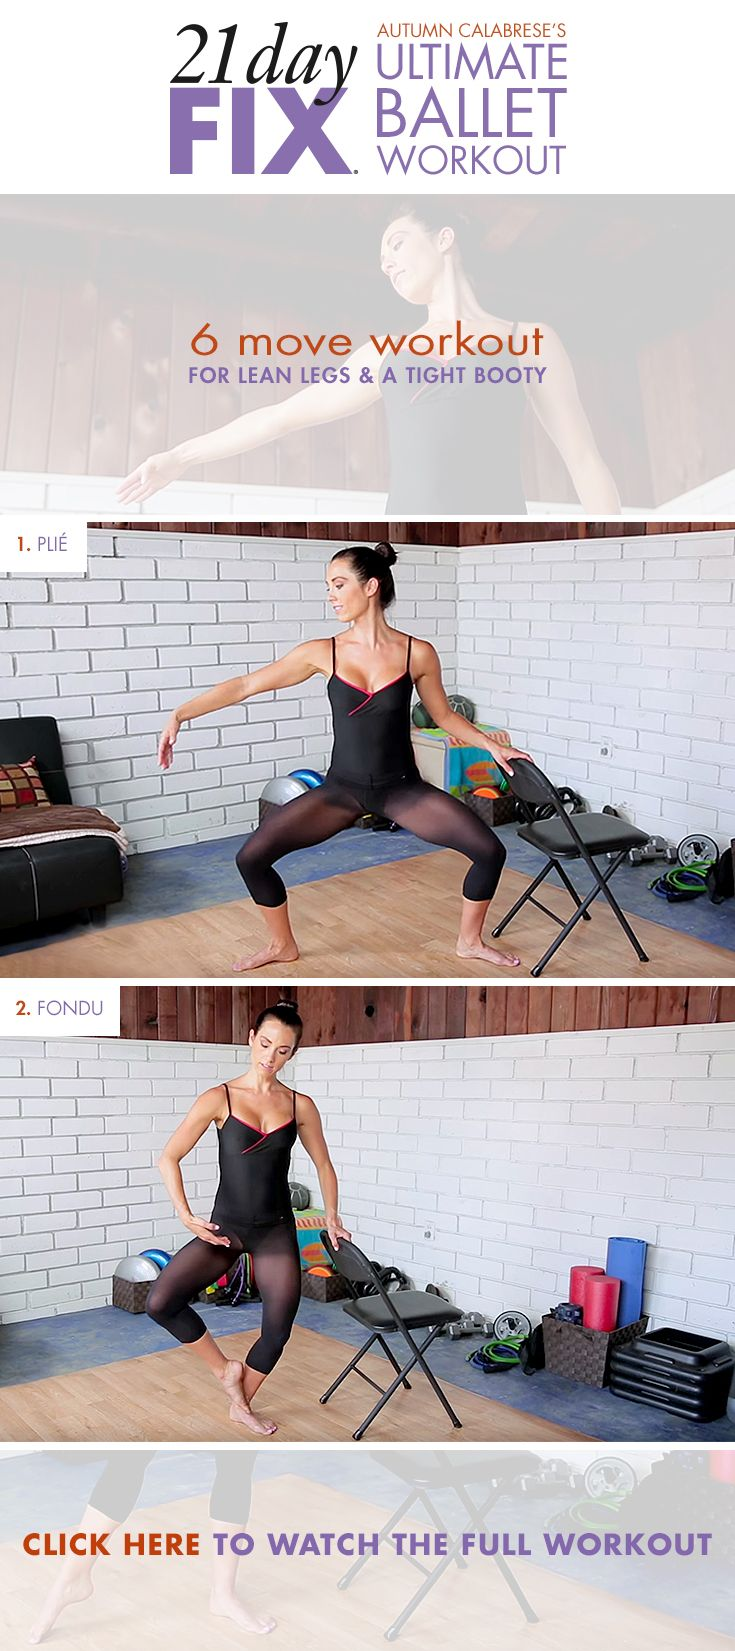 Strengthen your core & lower body with our favorite moves from Autumn's Ballet Workout! // 21 Day Fix // 21 Day Fix Extreme // fitness // fitspo // workout // motivation // exercise // Inspiration // barre // ballet // strength training // fitfam //fixfam // fit //                                                                                                                                                     More